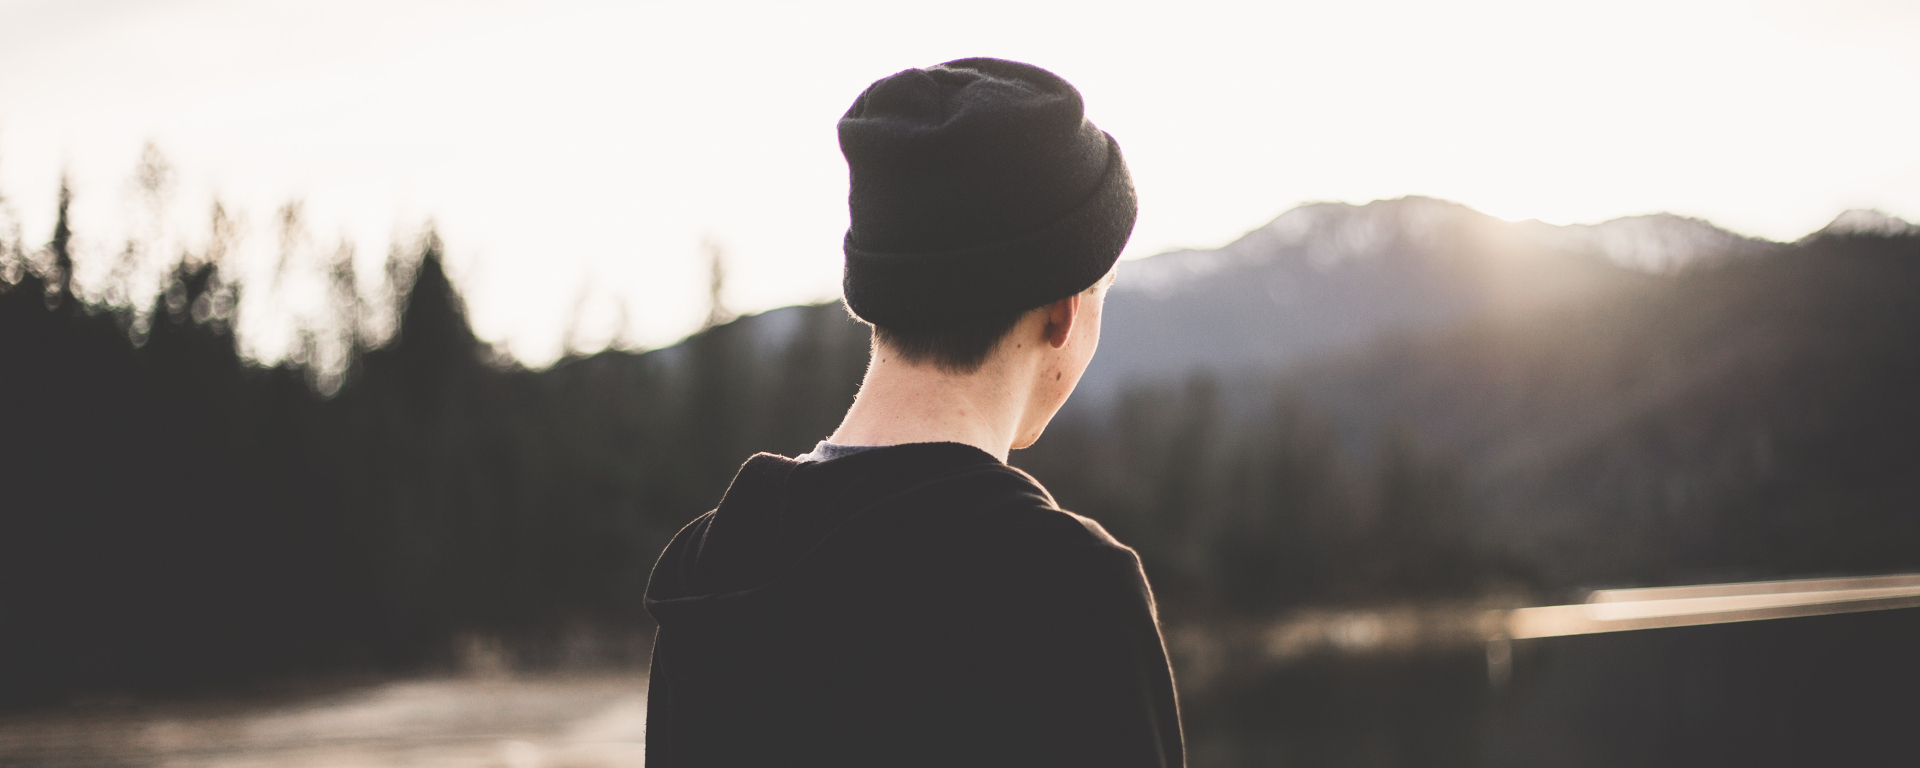 A boy with a black beanie watching a river landscape. The sun shines on his face from behind the mountains in the background.